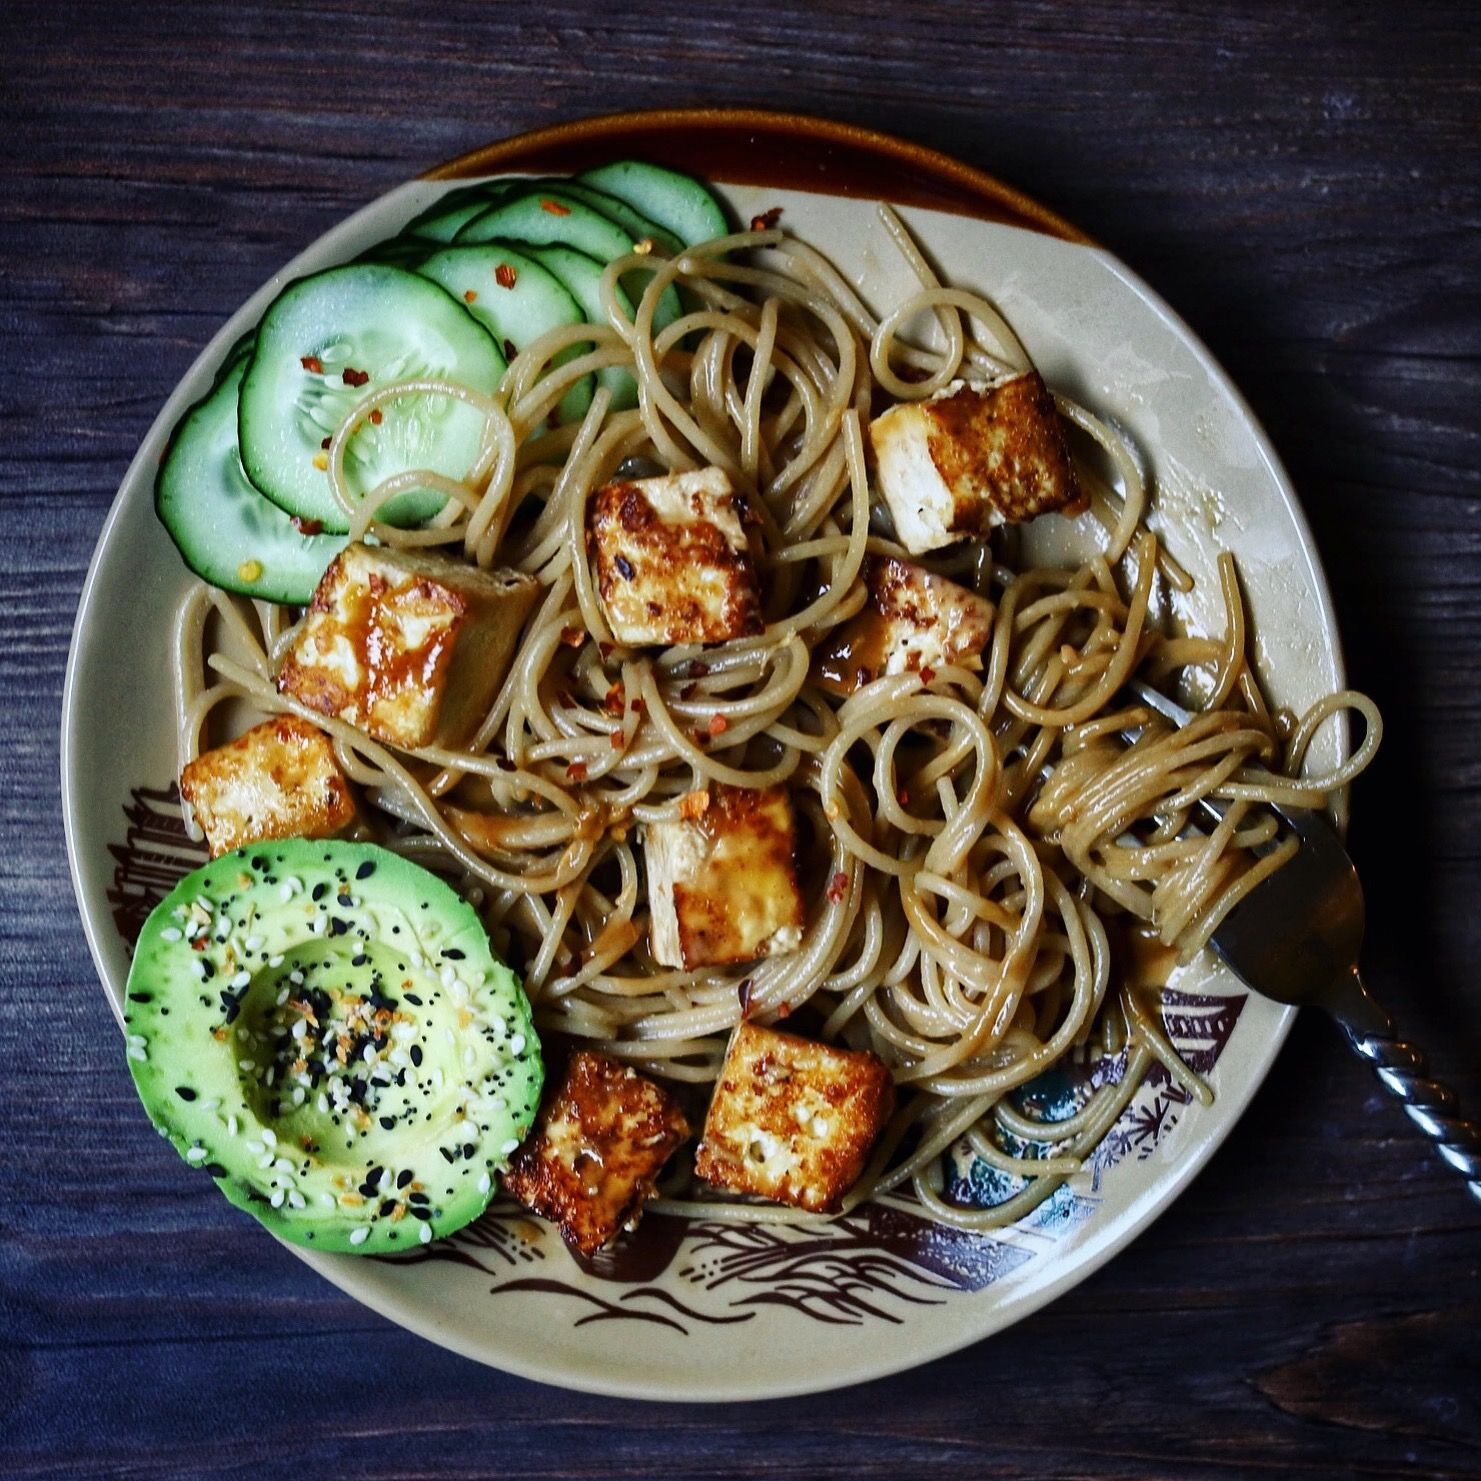 Cold Sesame Noodles with Spicy Tofu and Avocado